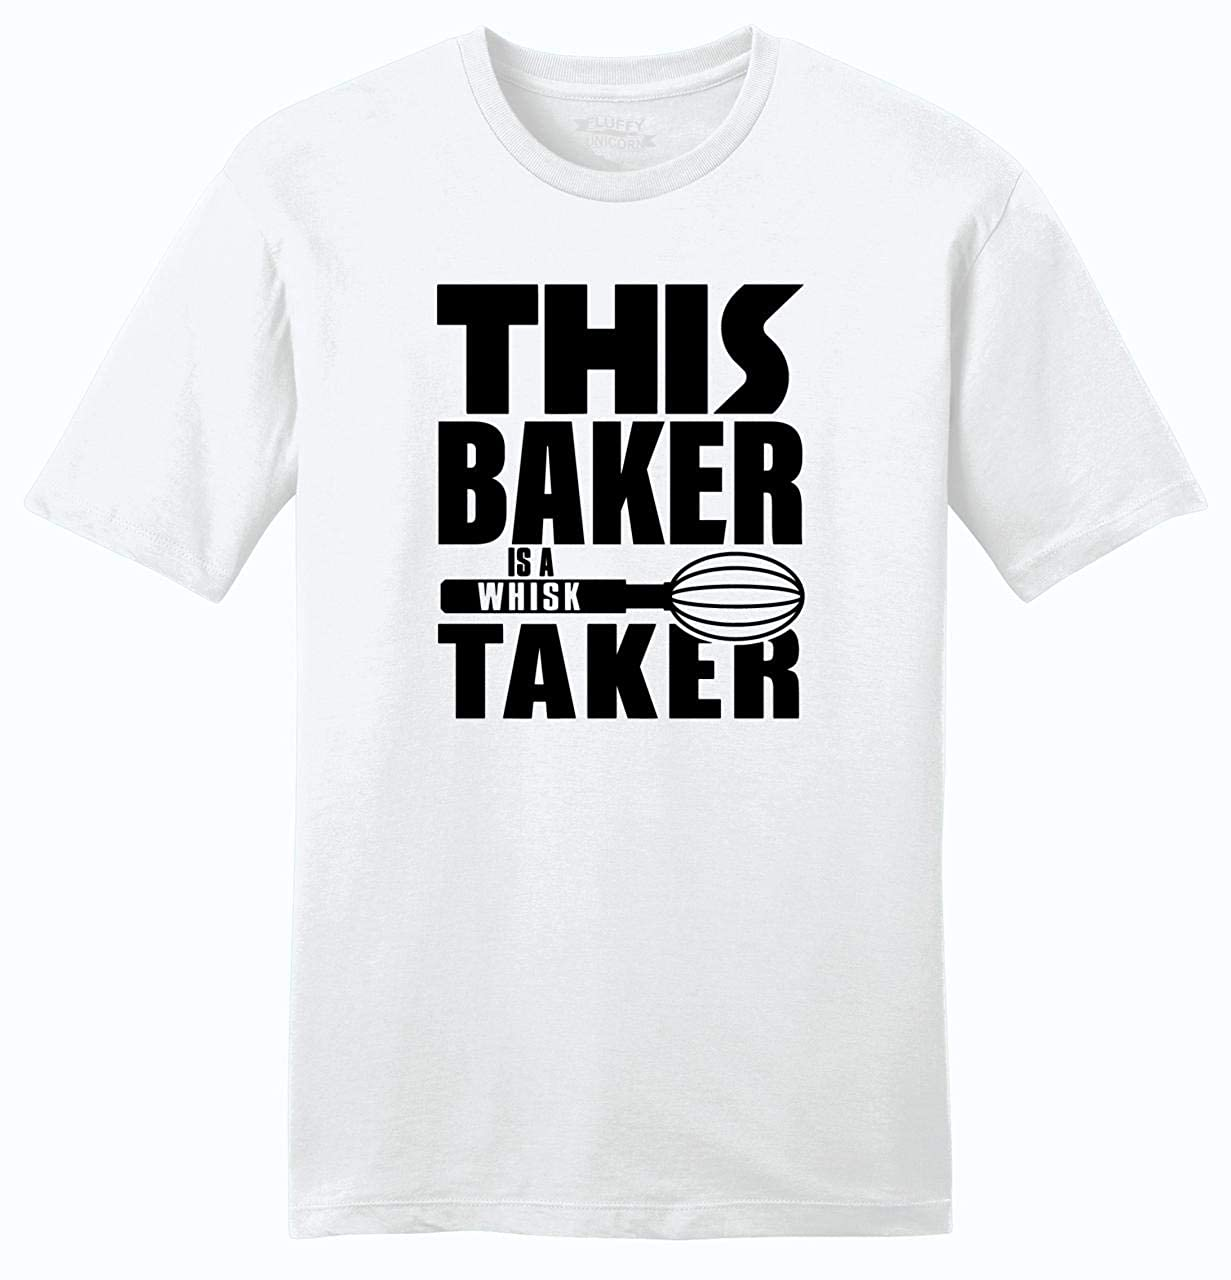 Comical Shirt Mens This Baker is A Whisk Taker Soft Tee